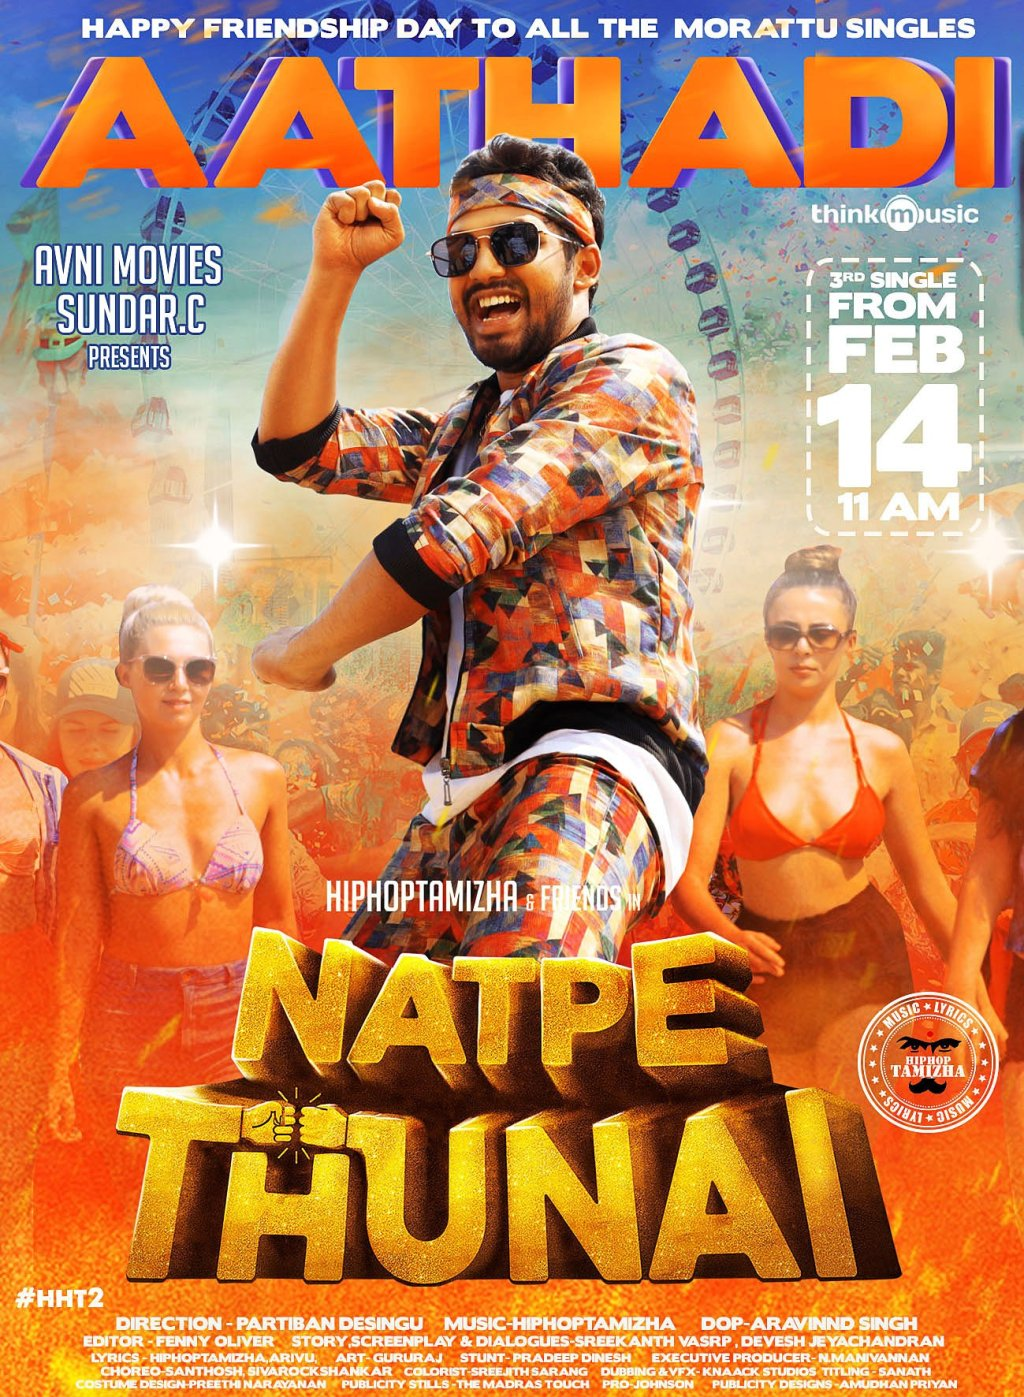 "'Natpe Thunai' starring Music composer  Hip Hop Aadhi  of  'Meesaye Murukku""  fame. The film is being directed by debutant Parthiban Desingu and produced by Sundar.C for Avni movies."